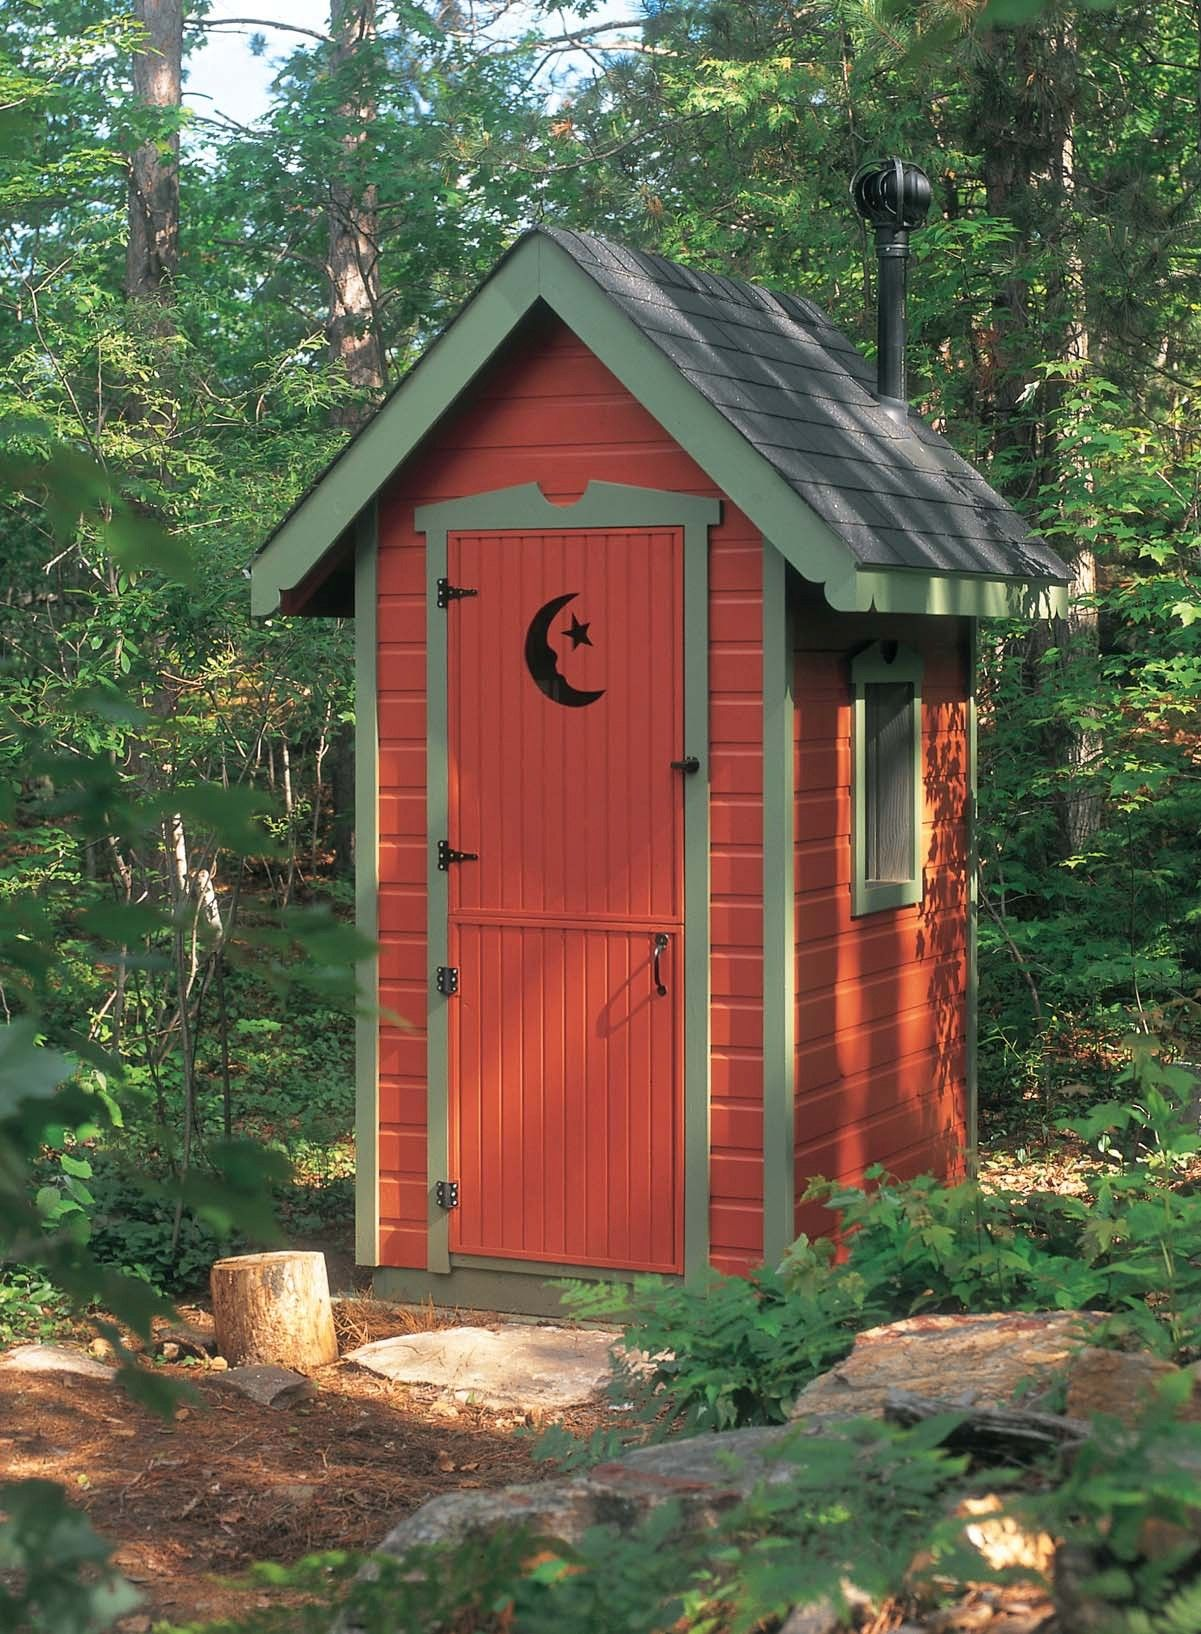 e6e07d76cd62f4e7755c441349378779 Novelty Wood Outhouse Plans on wood kitchen plans, wood well plans, wood mill plans, wood home plans, wood target stand plans, wood sink plans, wood toilet seat plans, wood lounge plans, wood camping plans, wood pantry plans, wood chicken coop plans, wood bear plans, wood coffee plans, wood corn crib plans, wood yard plans, wood out house, wood bank plans, wood people plans, wood fish plans, wood iphone speaker plans,